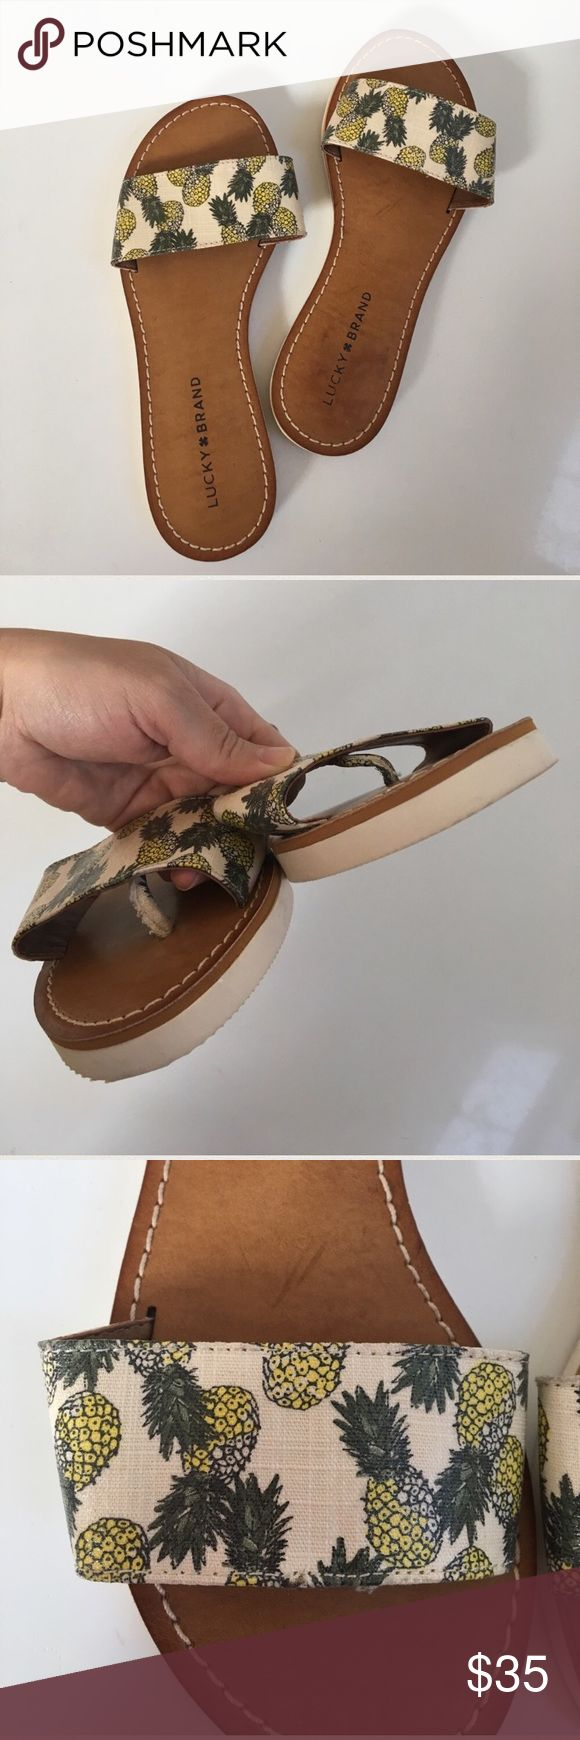 NWOT { Lucky Brand } Pineapple slipper sandal Lucky Brand Pineapple Sandals, slip on with toe separator, in great condition new but has mild stick on right back from tag sticker and left shoe has small prick sized red shown see picture not noticeable on). These are so adorable! Lucky Brand Shoes Sandals